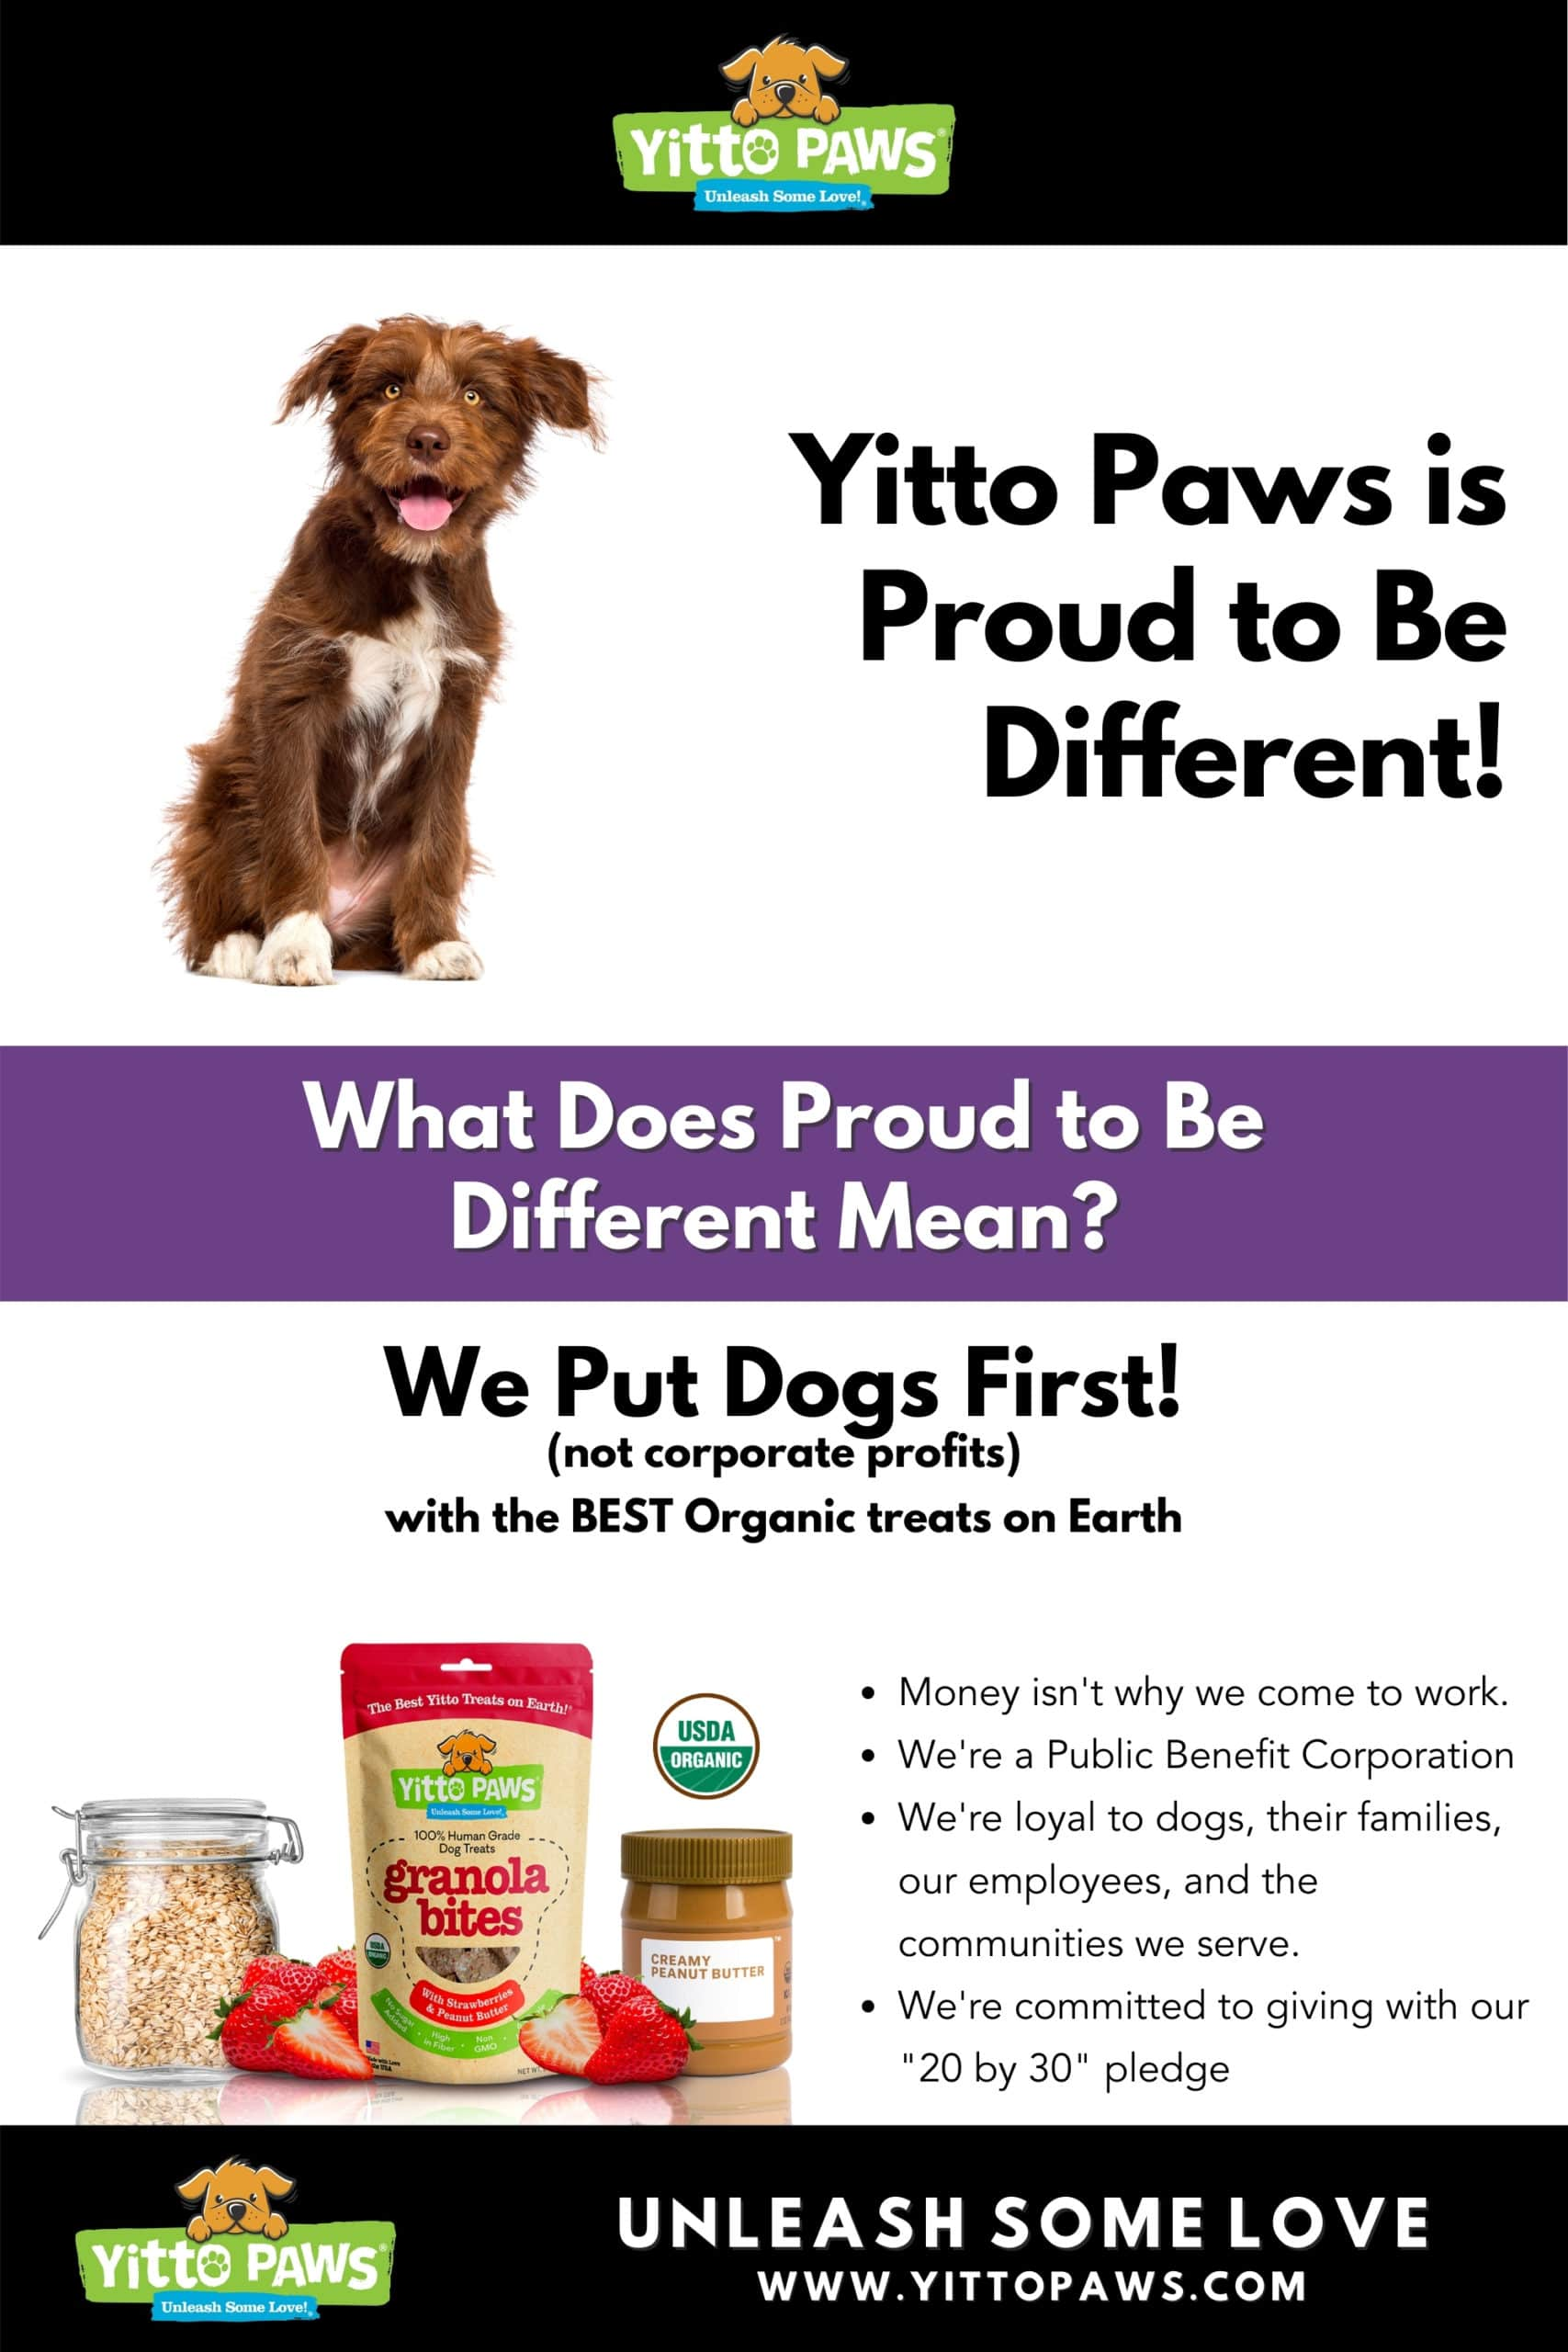 Yitto Paws is Proud to Be Different by Putting Dogs First with the best organic dog treats on earth!